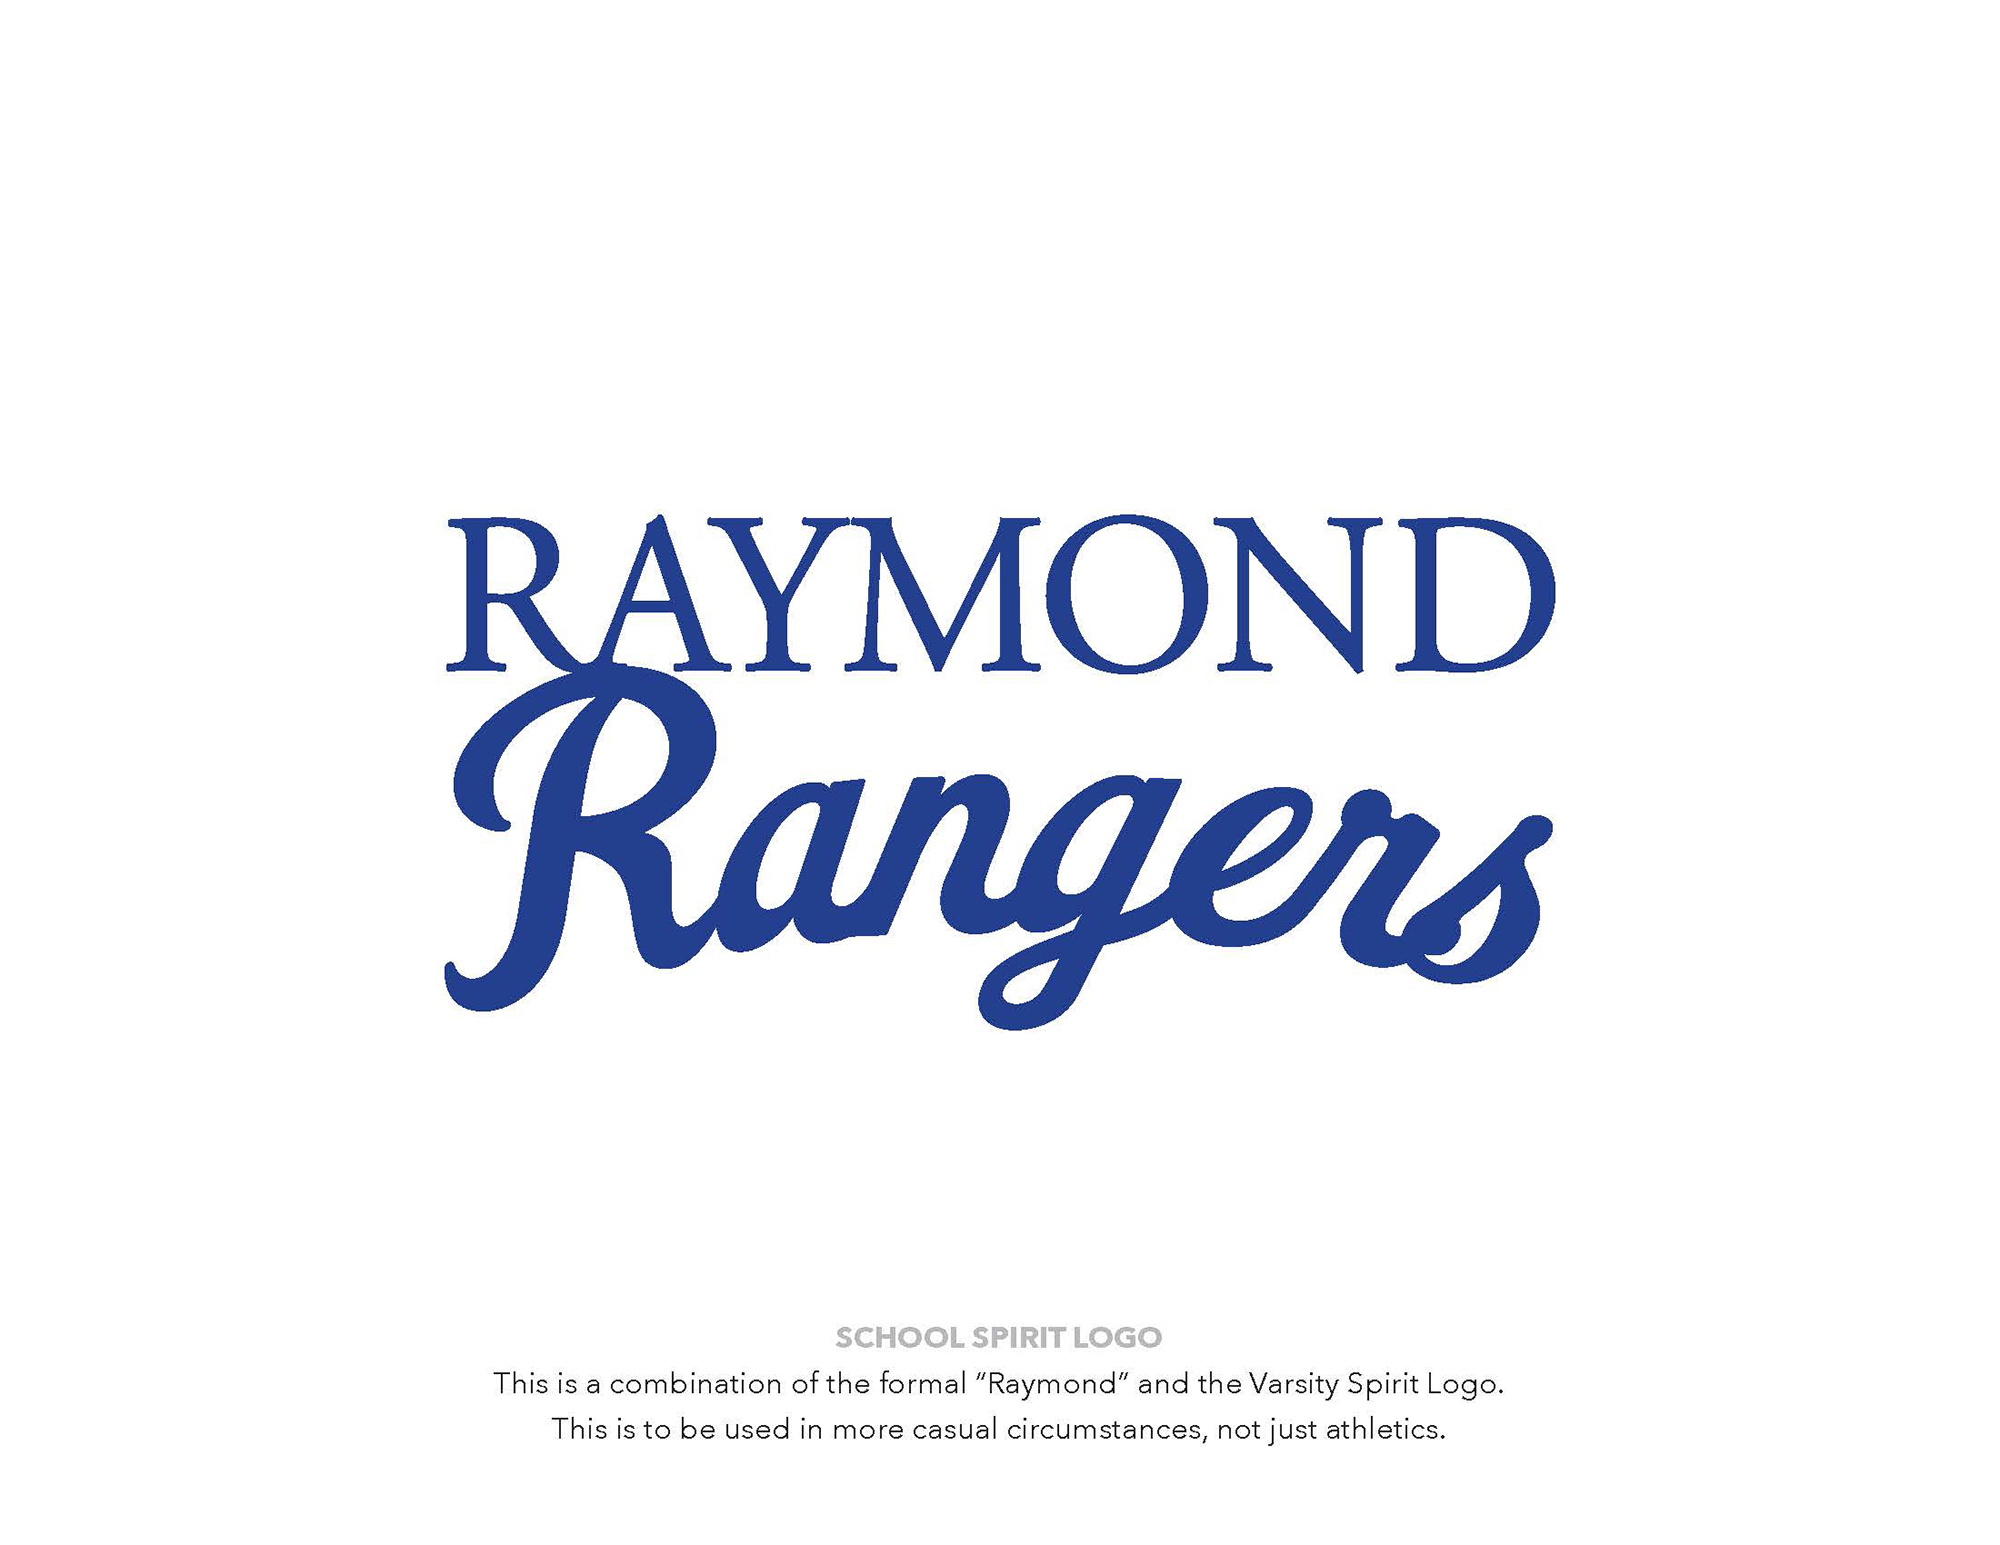 RaymondBrandingStandards_061818_Page_4.jpg